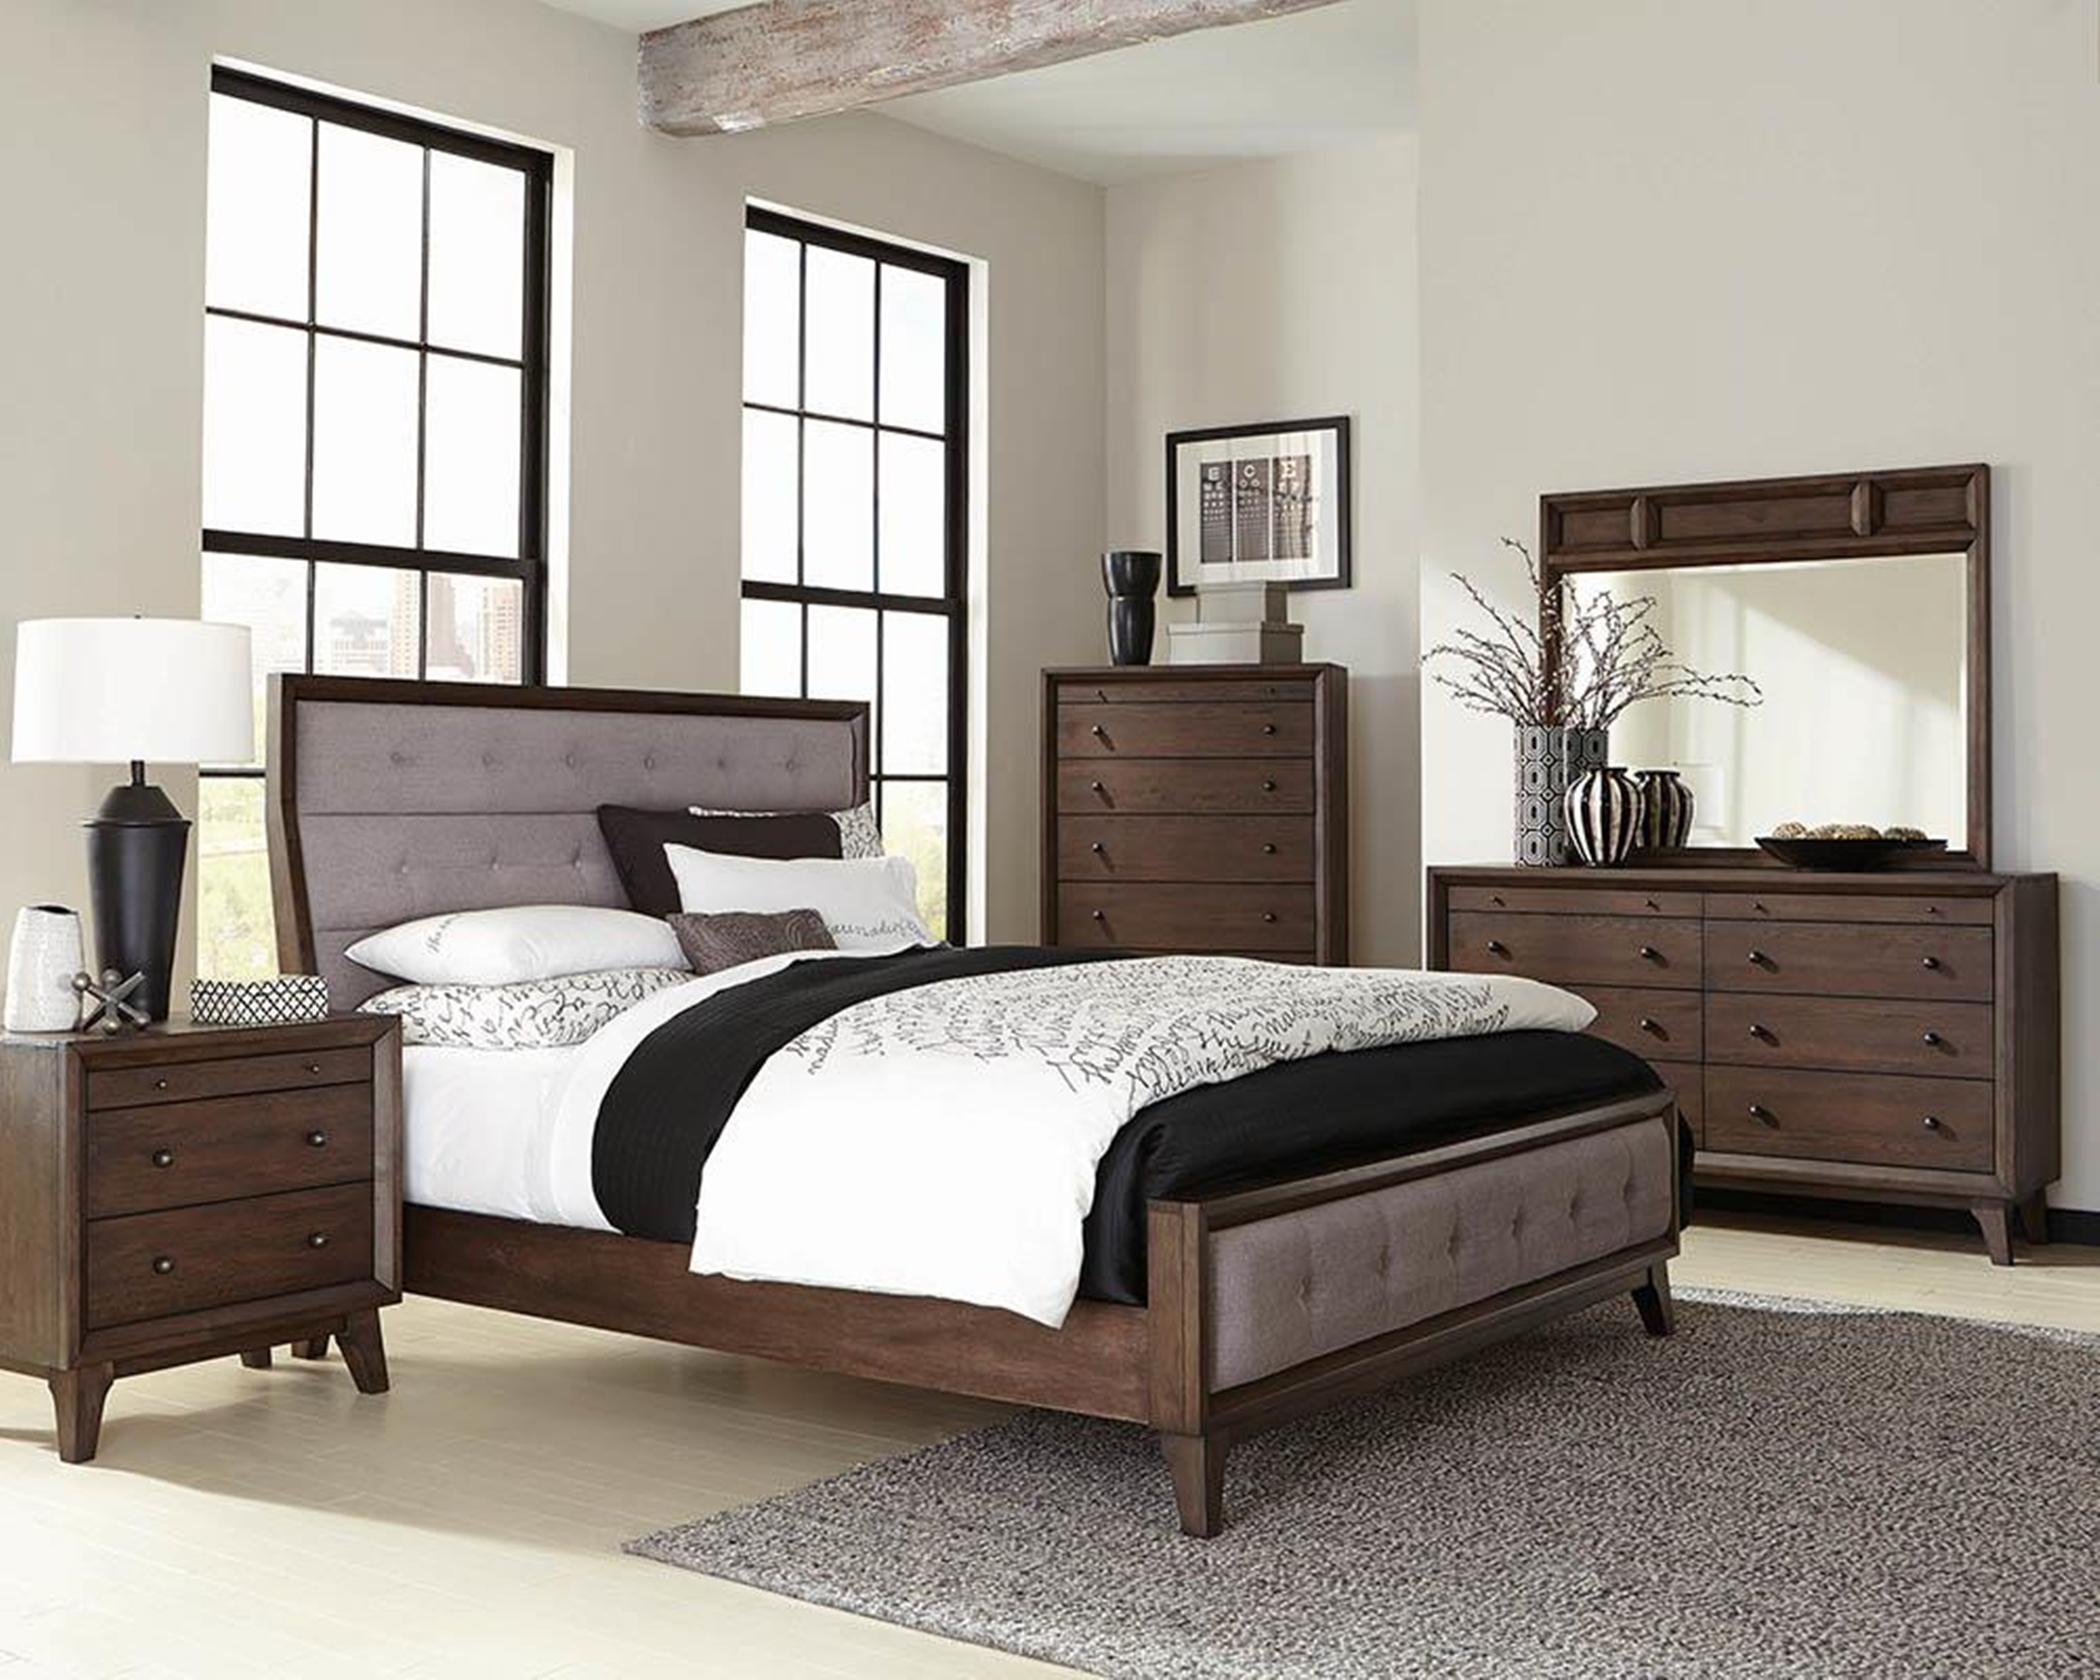 Bingham Retro-Modern Brown Queen Bed